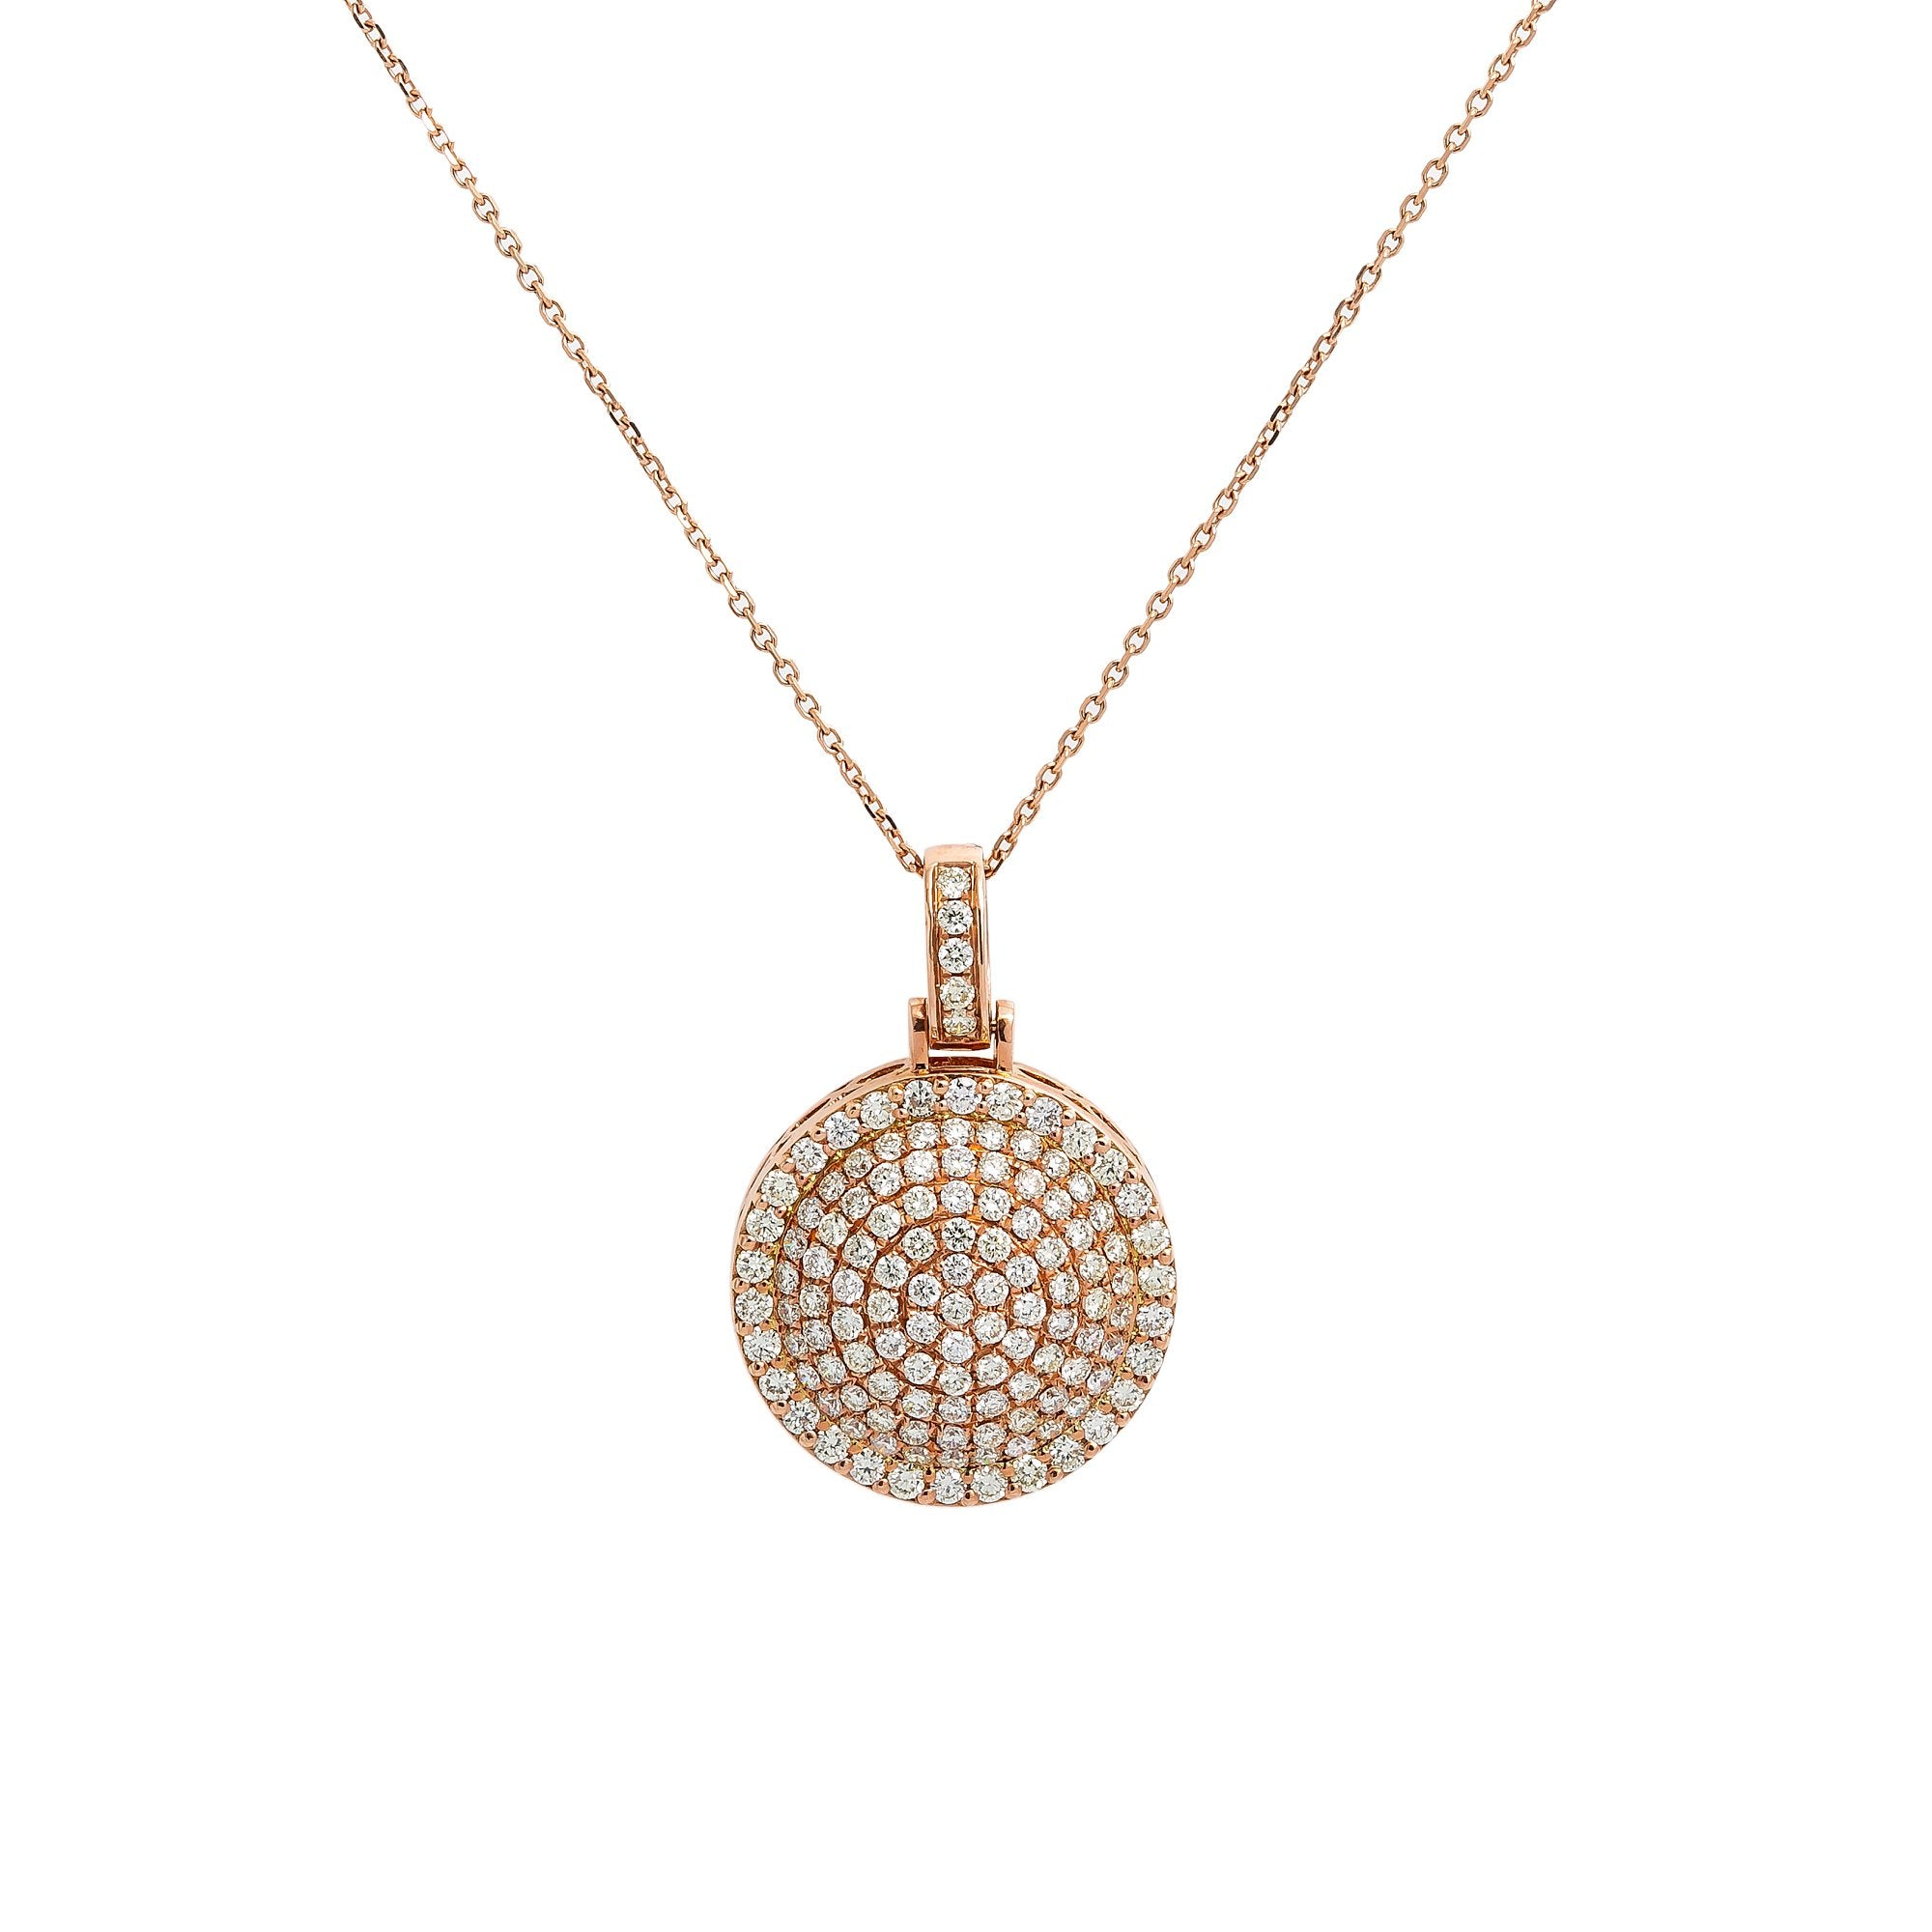 Women's 14K Rose Gold Pendant with 1.80 CT Diamonds